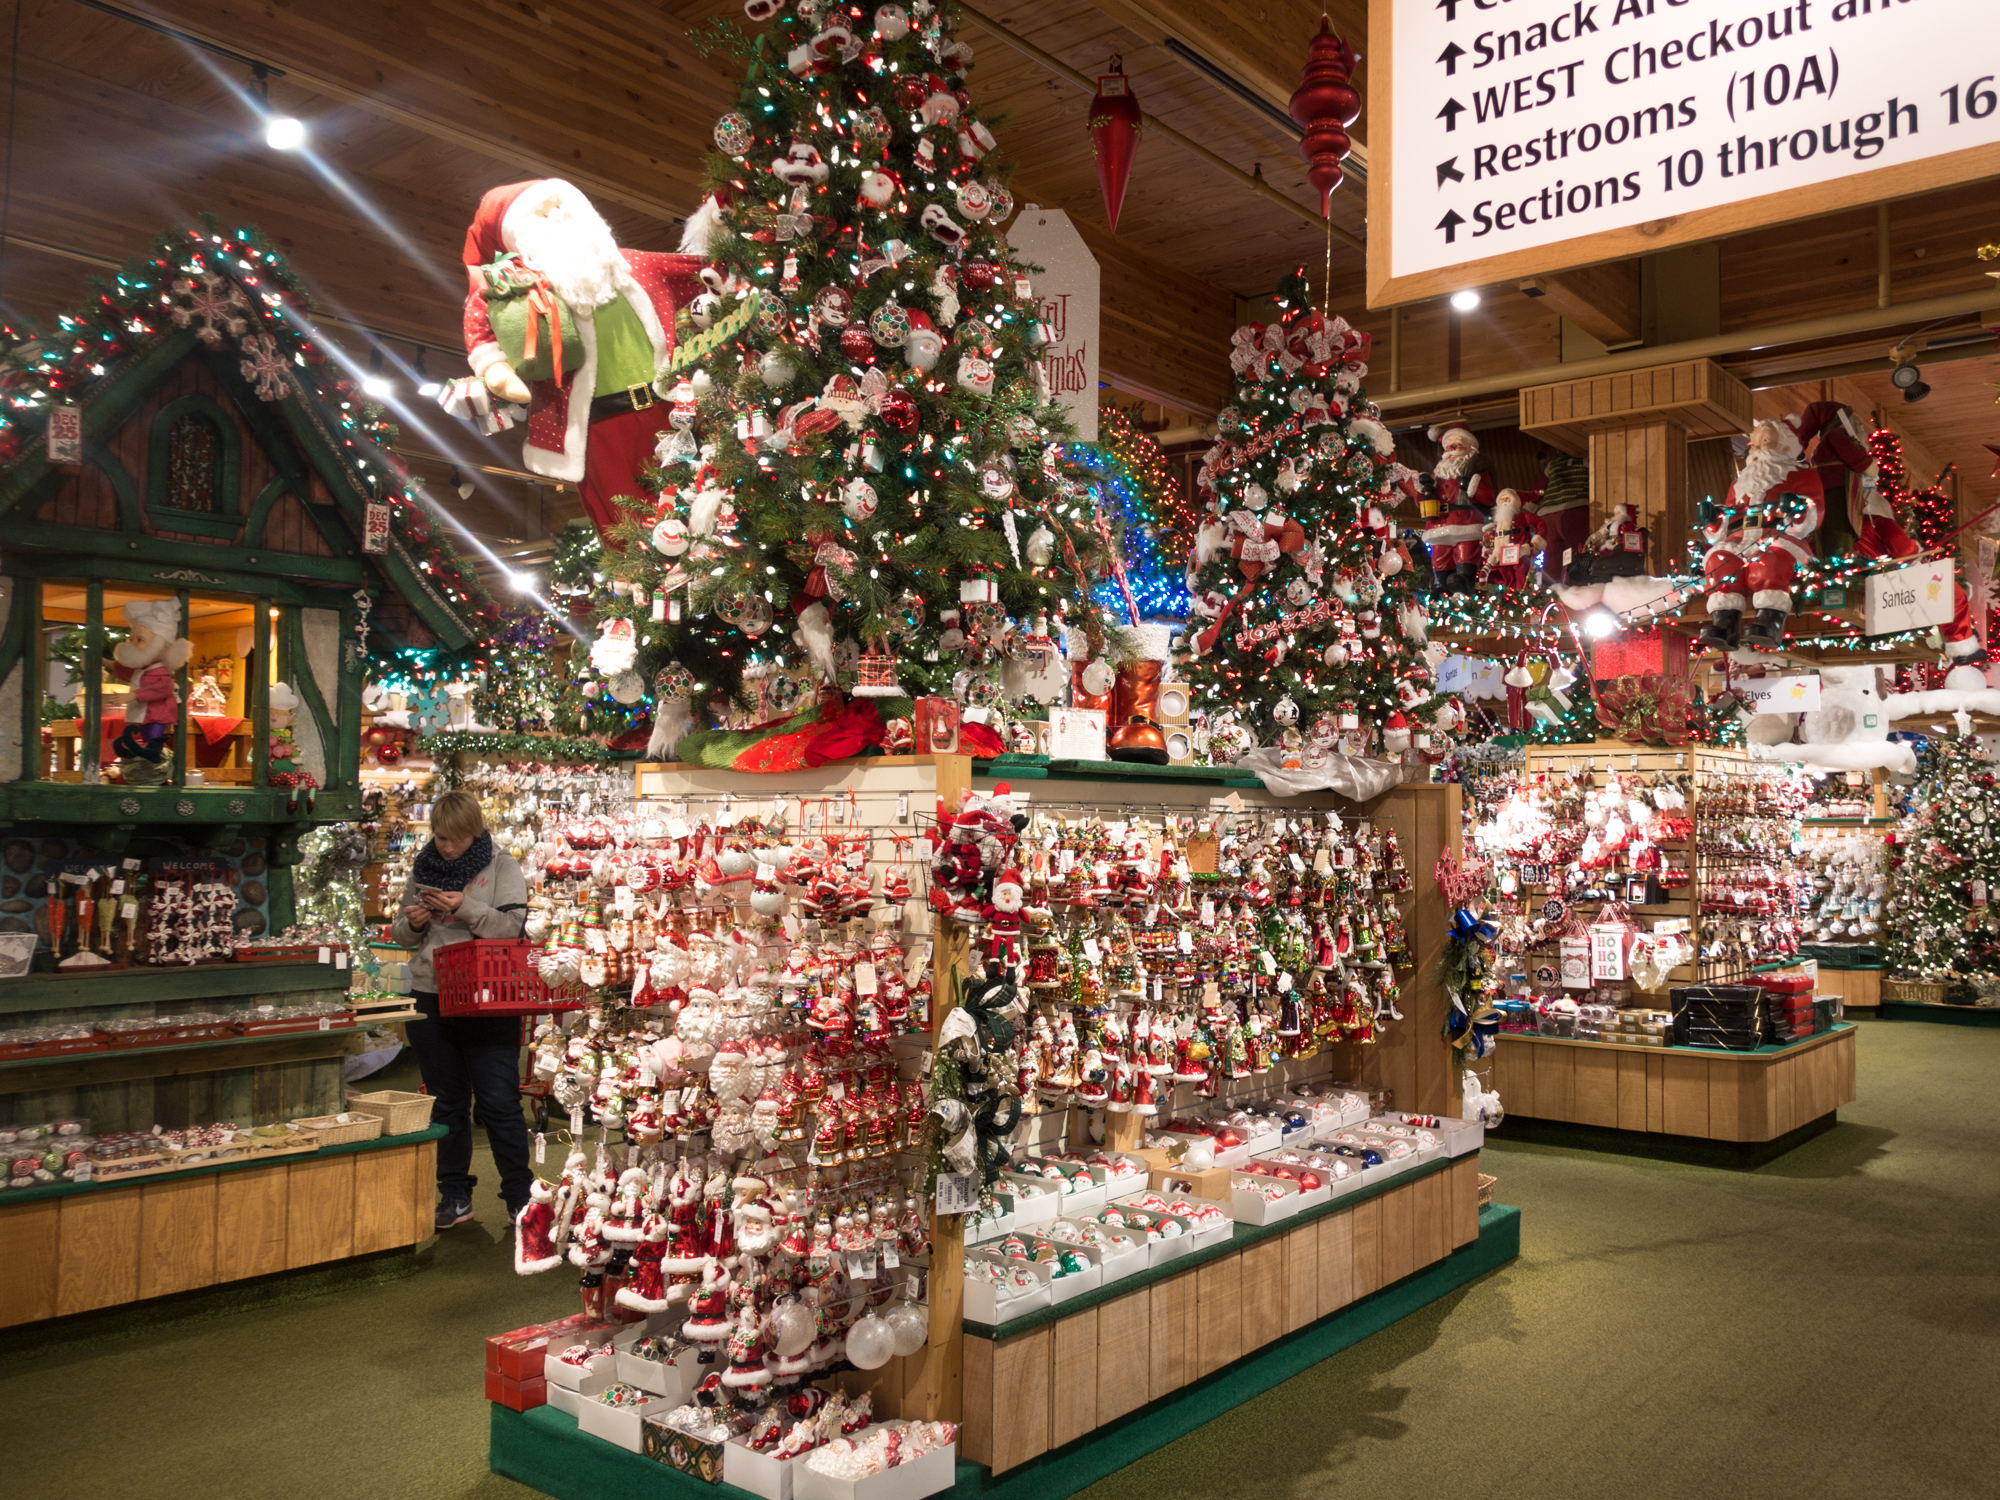 At Bronner's CHRISTmas Wonderland, you can experience Christmas year-round. This guide to visiting Bronner's will show you why you need to visit this magical place. Plus some tips for your visit!